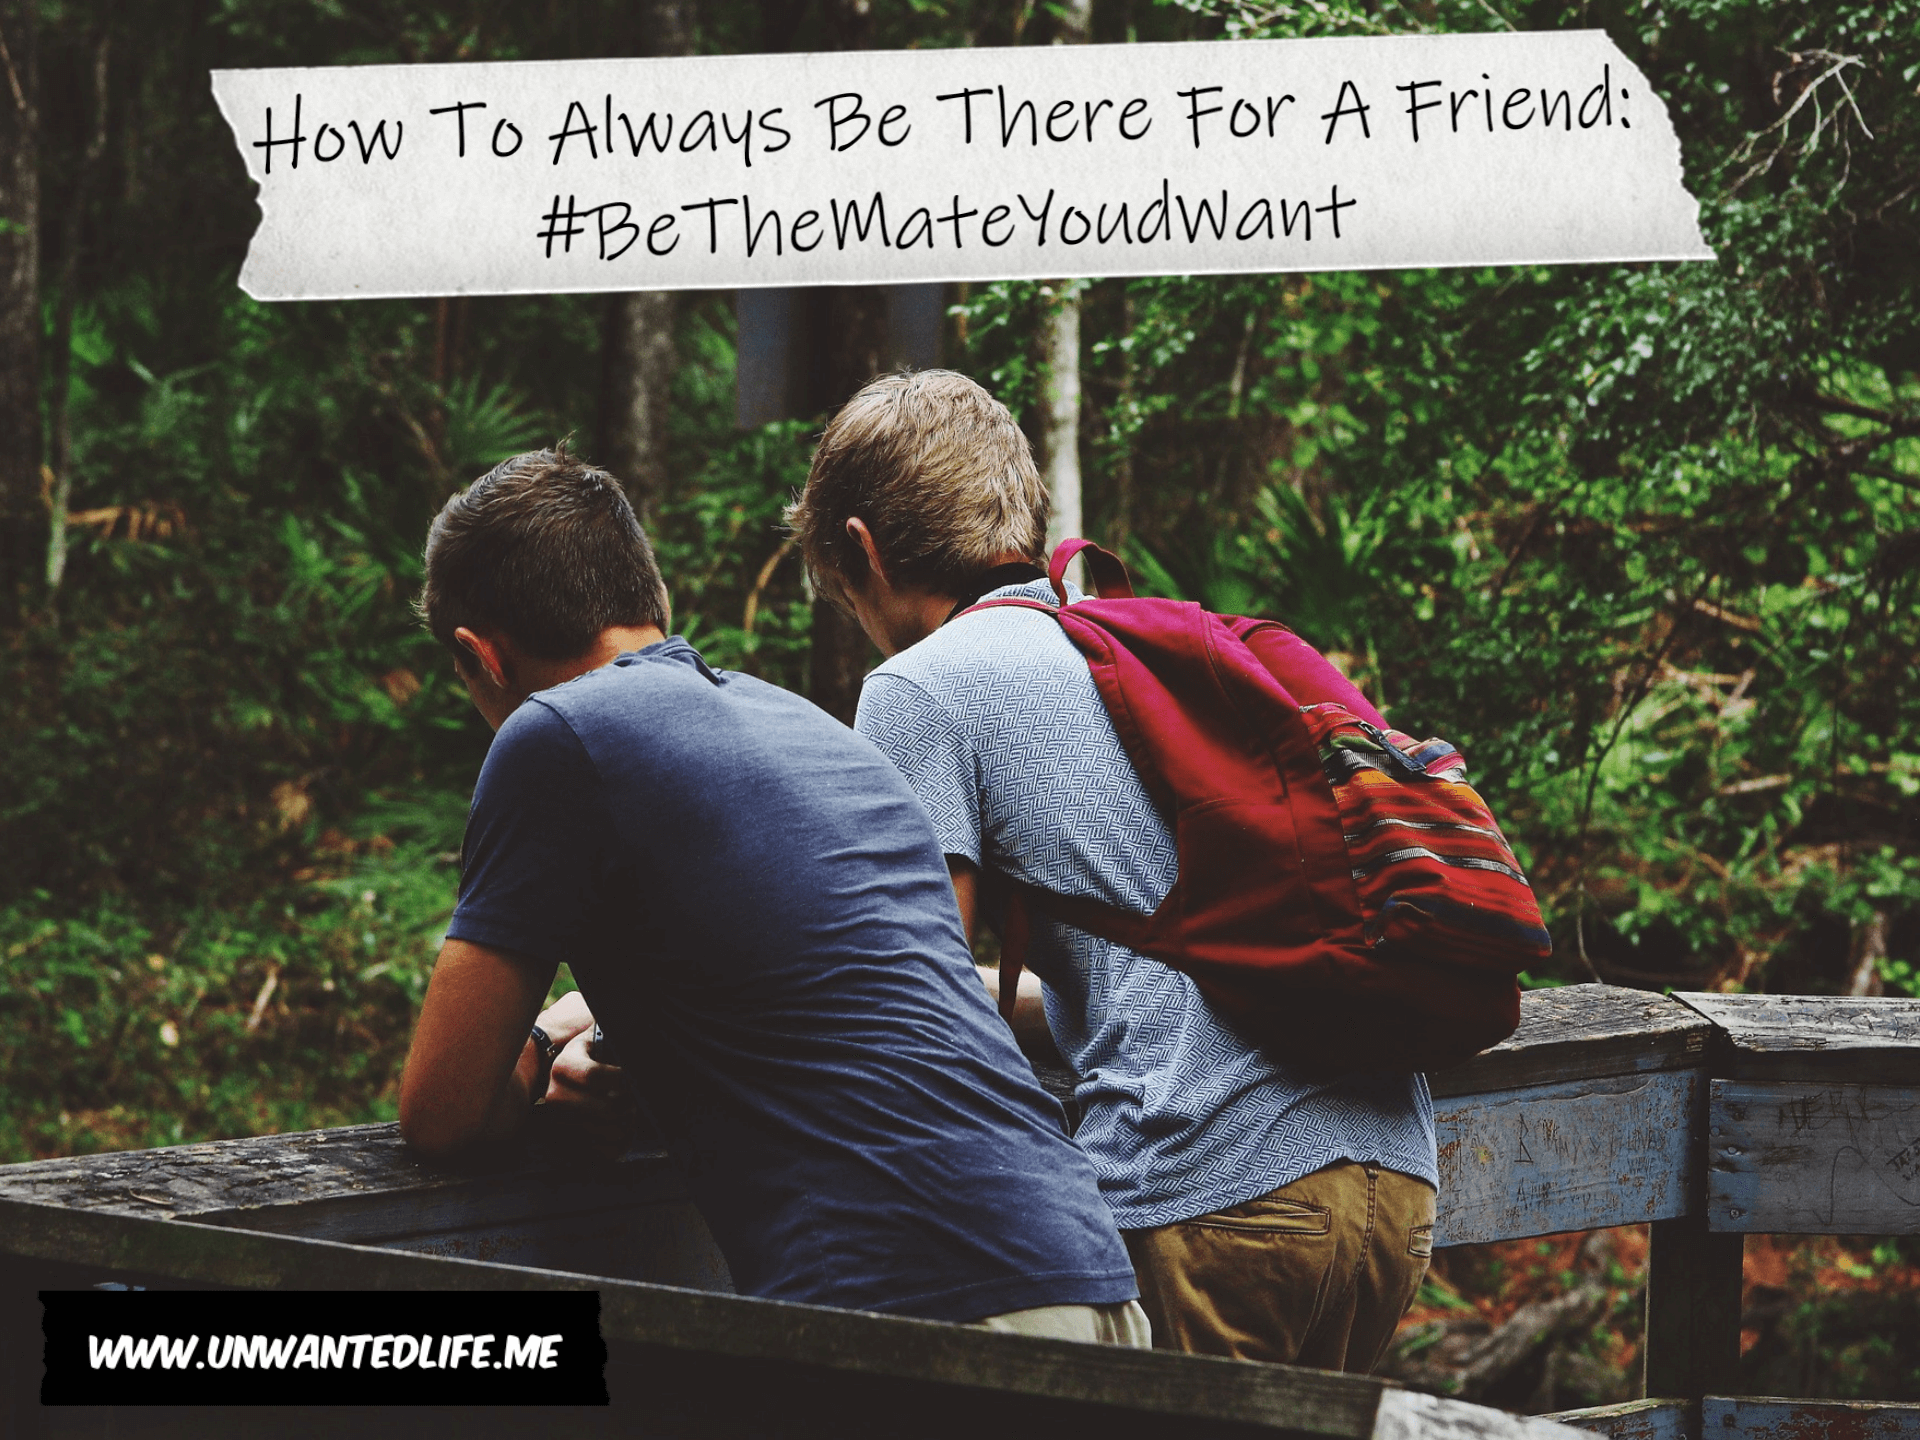 How To Always Be There For A Friend: #BeTheMateYoudWant | Mental Health and Wellness | Unwanted Life